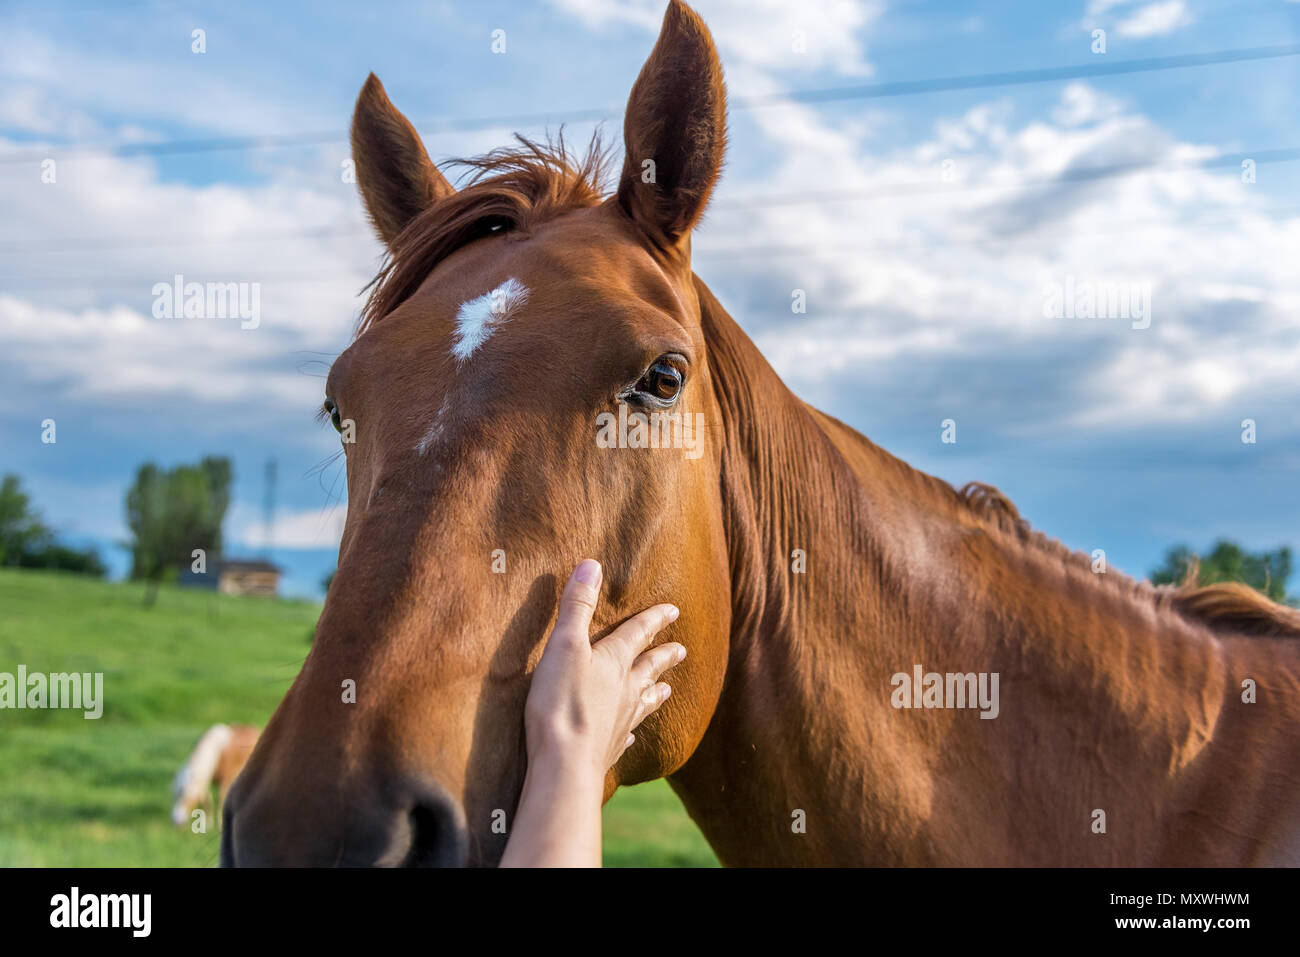 The hand of a woman is stroking a horse at sunset. - Stock Image